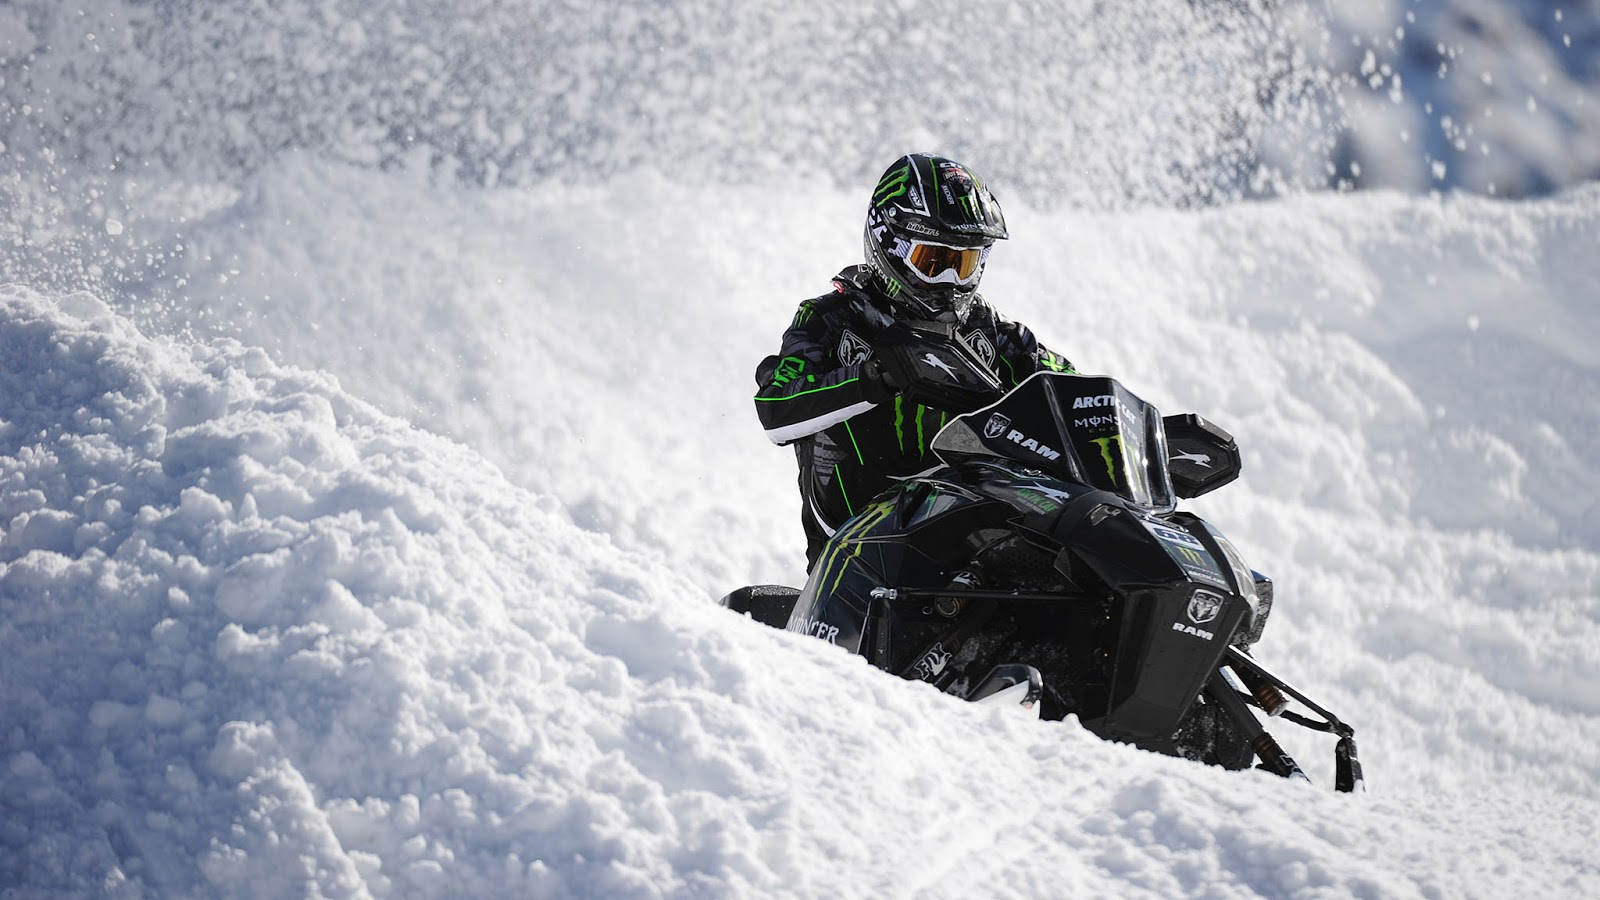 Snowmobile Wallpaper Pictures Hd Wallpapers